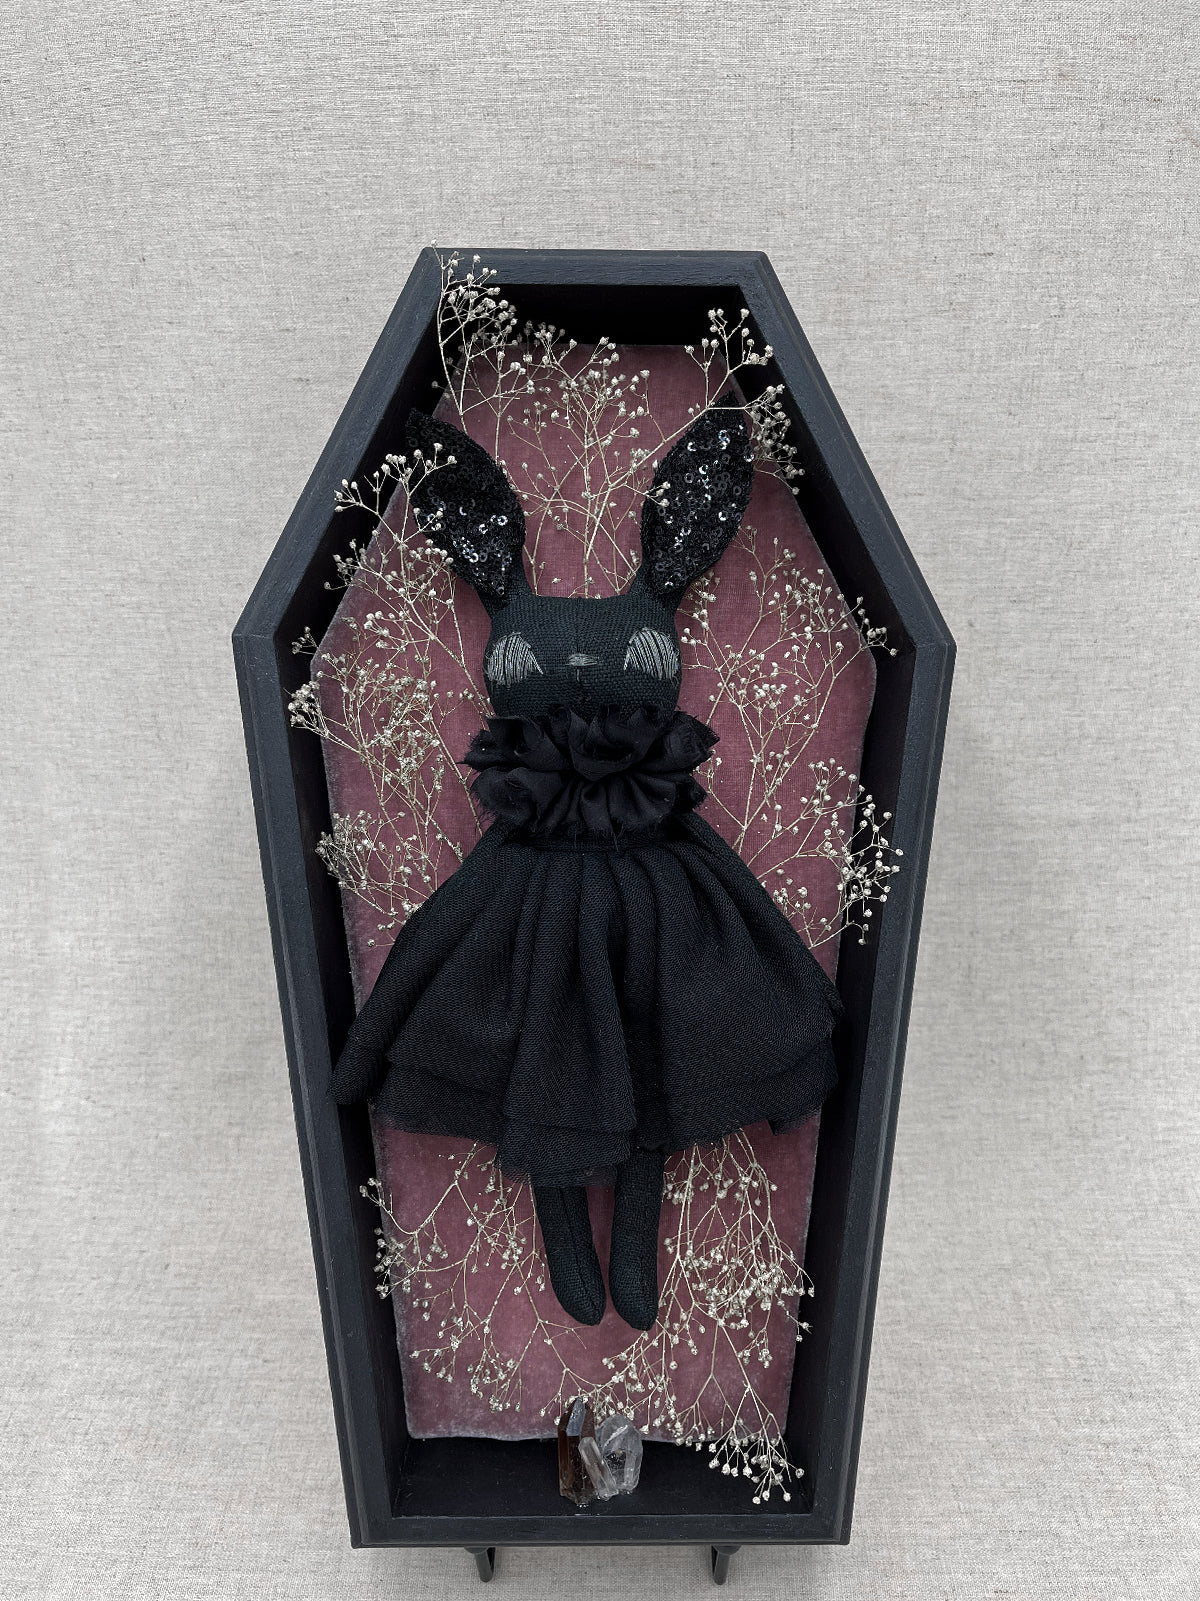 Trinette Couture Bunny Shadow Box Display